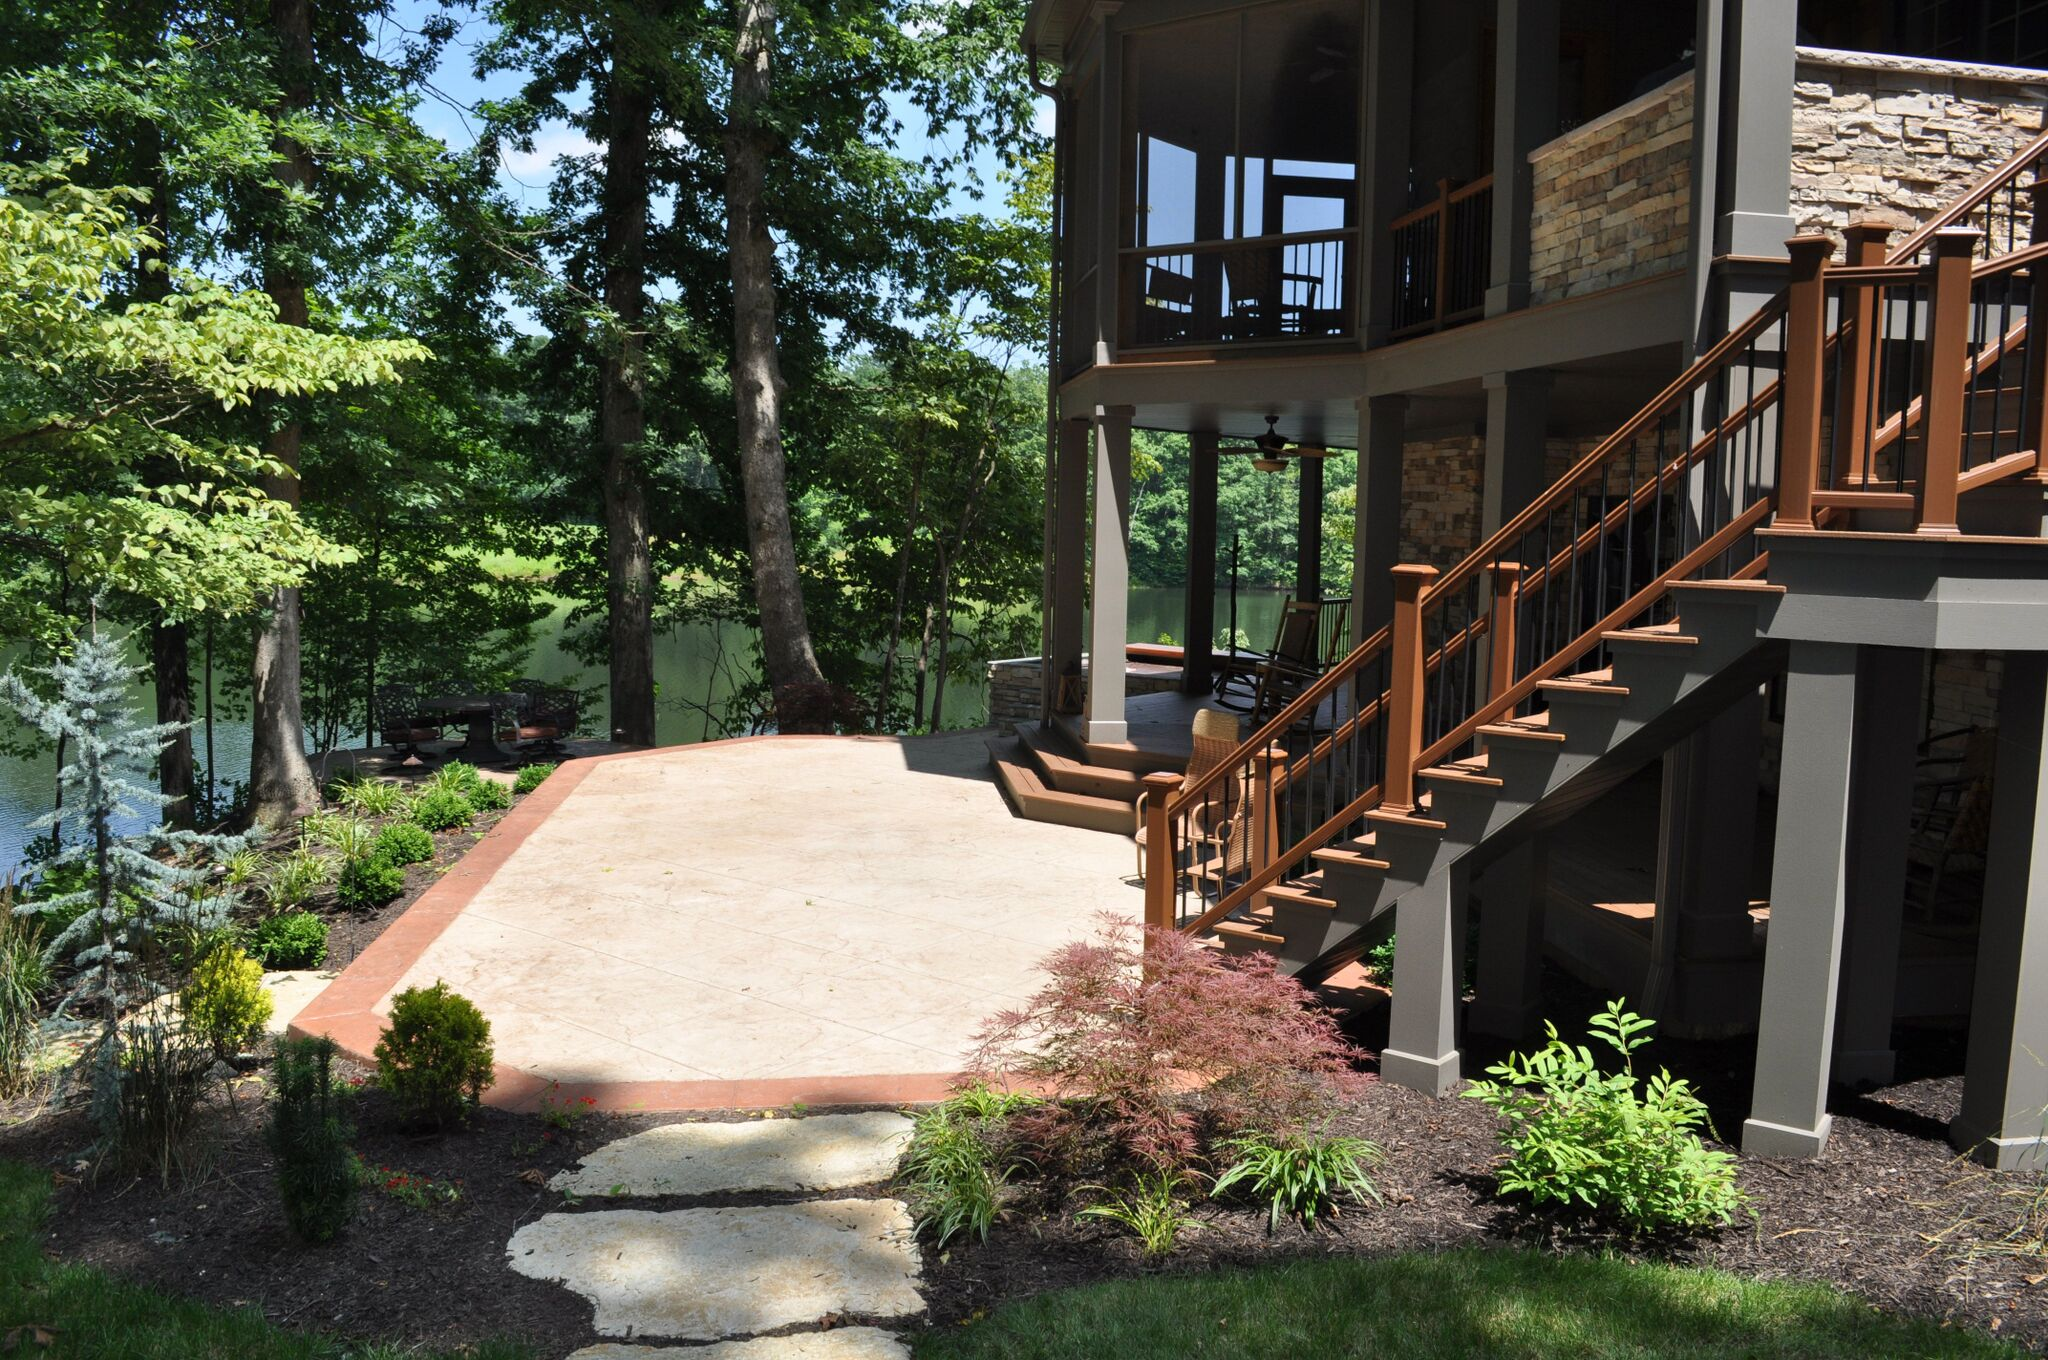 Geist Builder - Side View With Lake